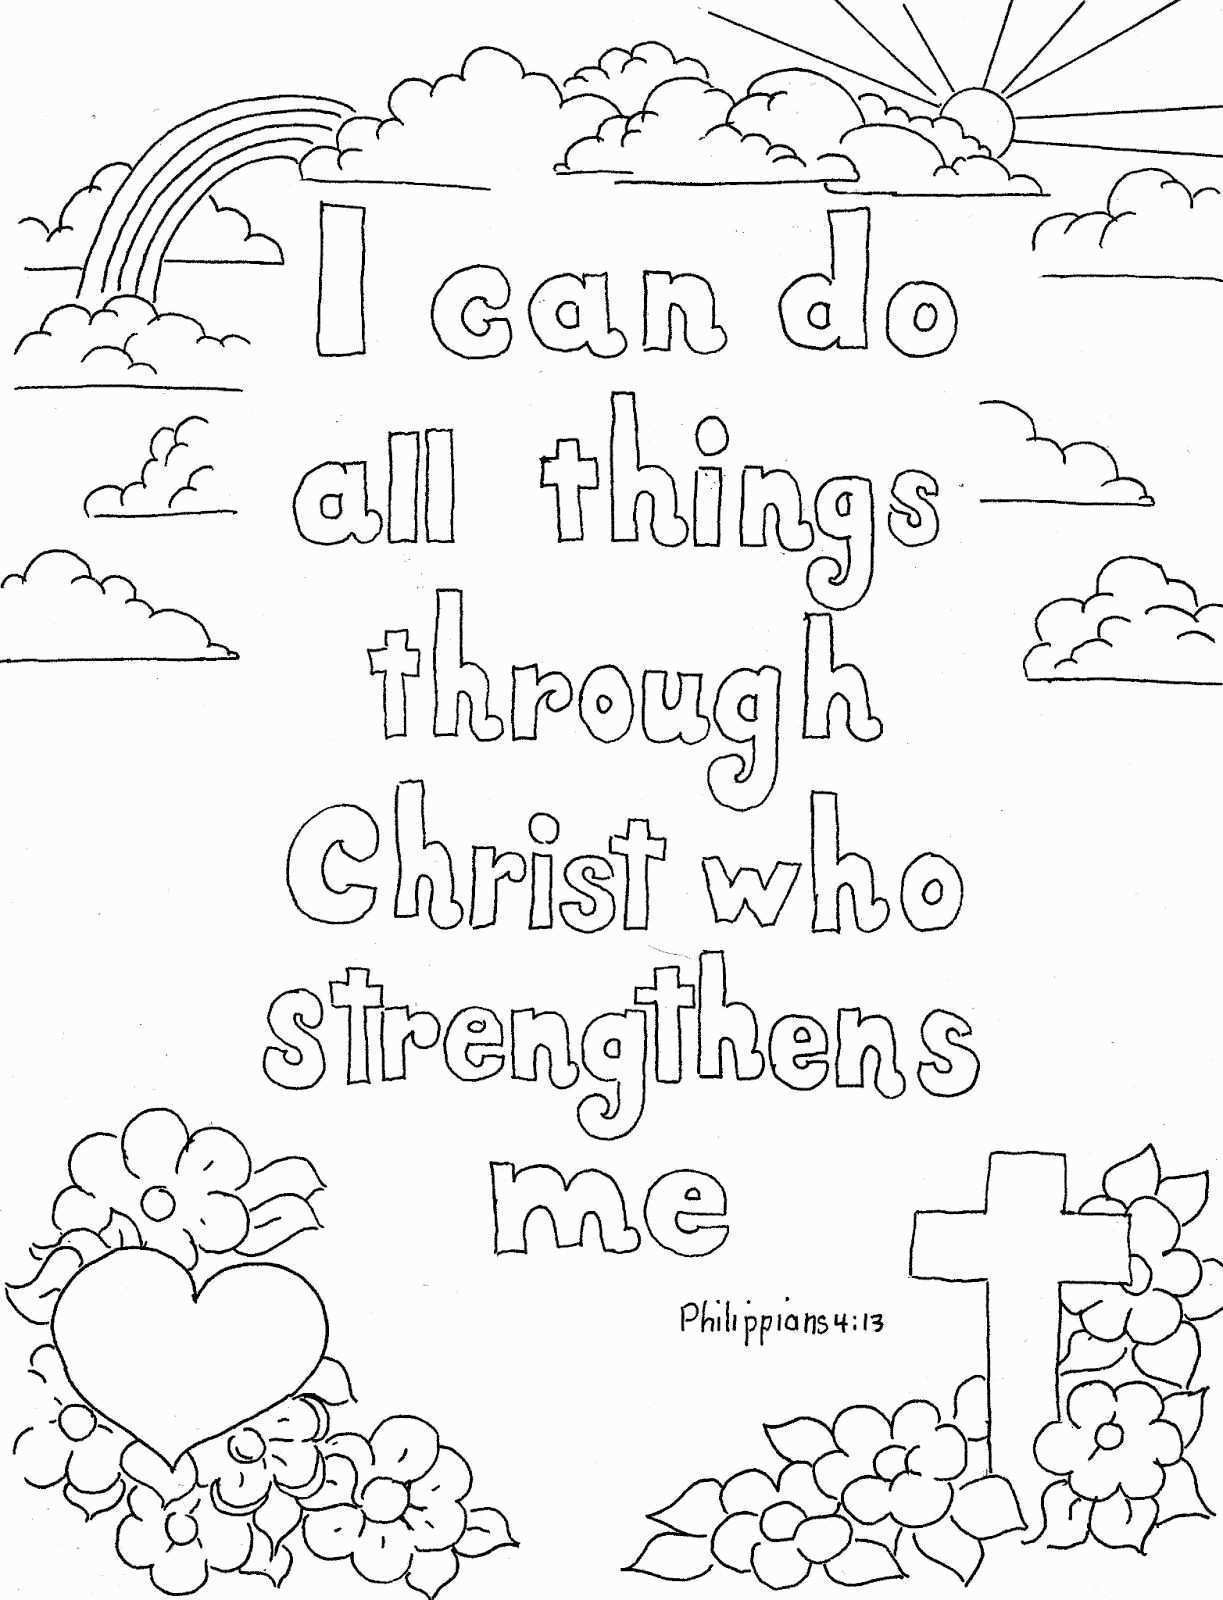 Coloring Pages Kids Best Cool Vases Flower Vase Coloring Page – Fun Time